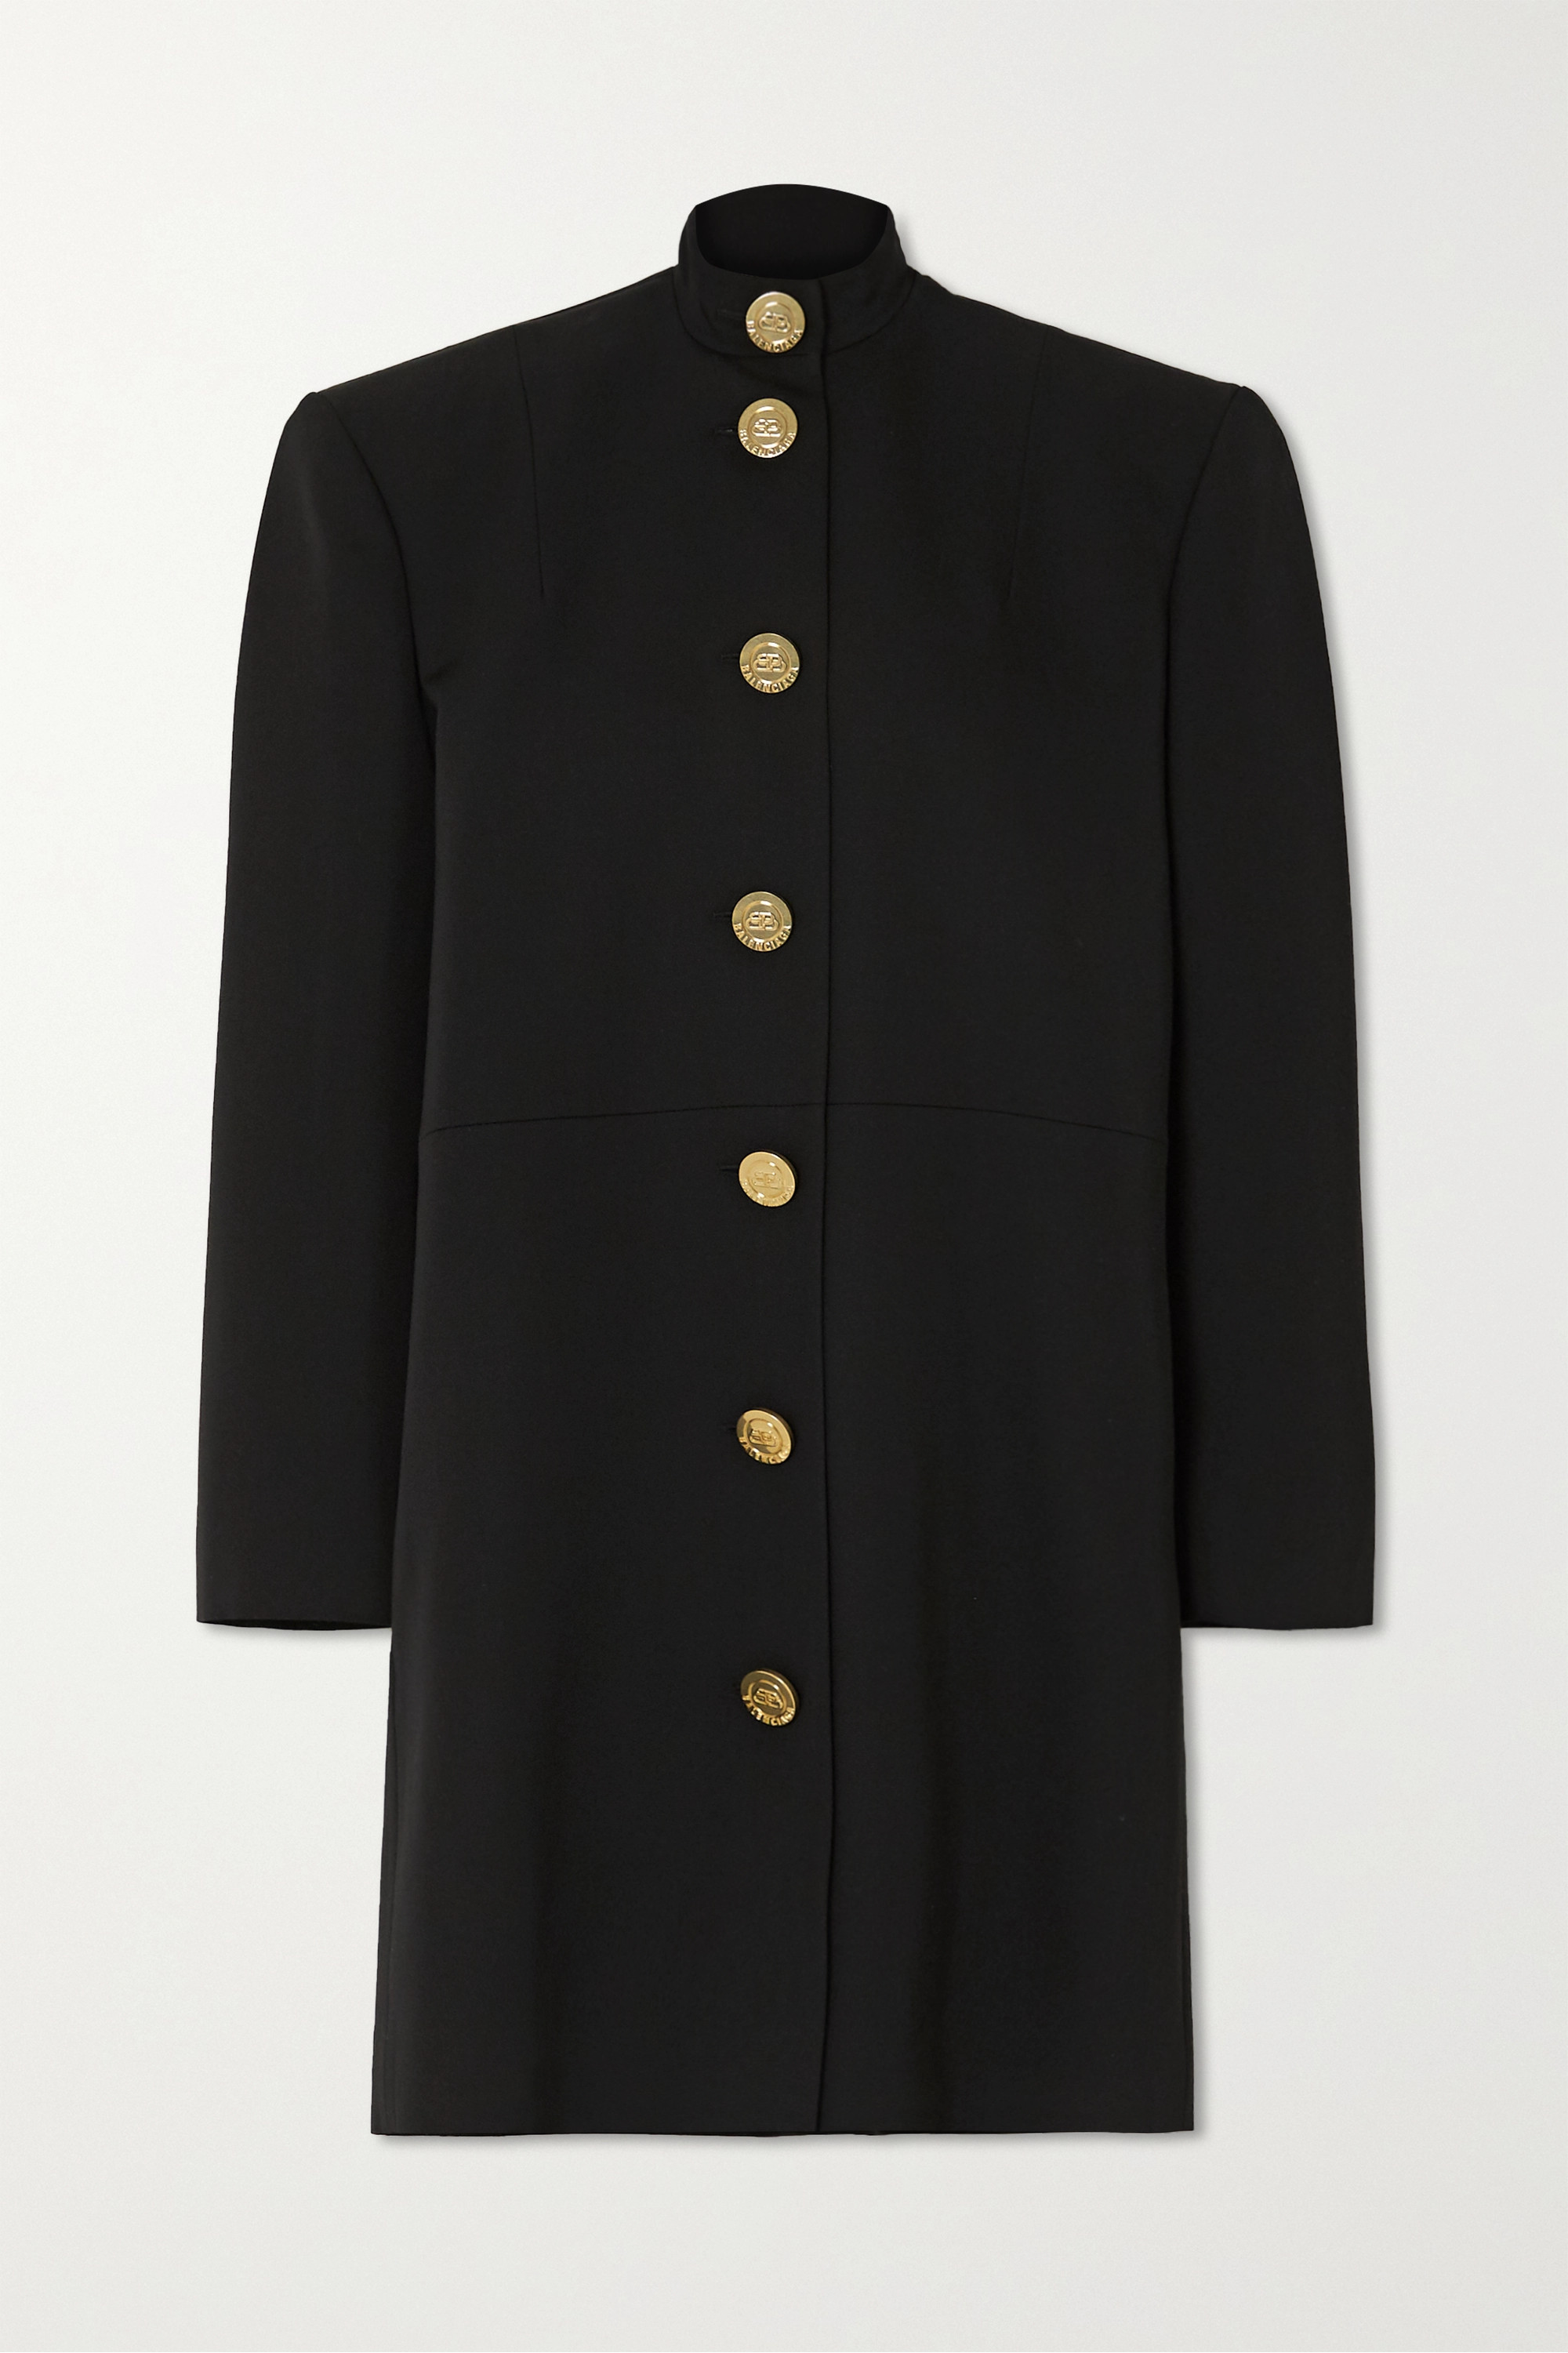 Balenciaga Oversized wool mini dress